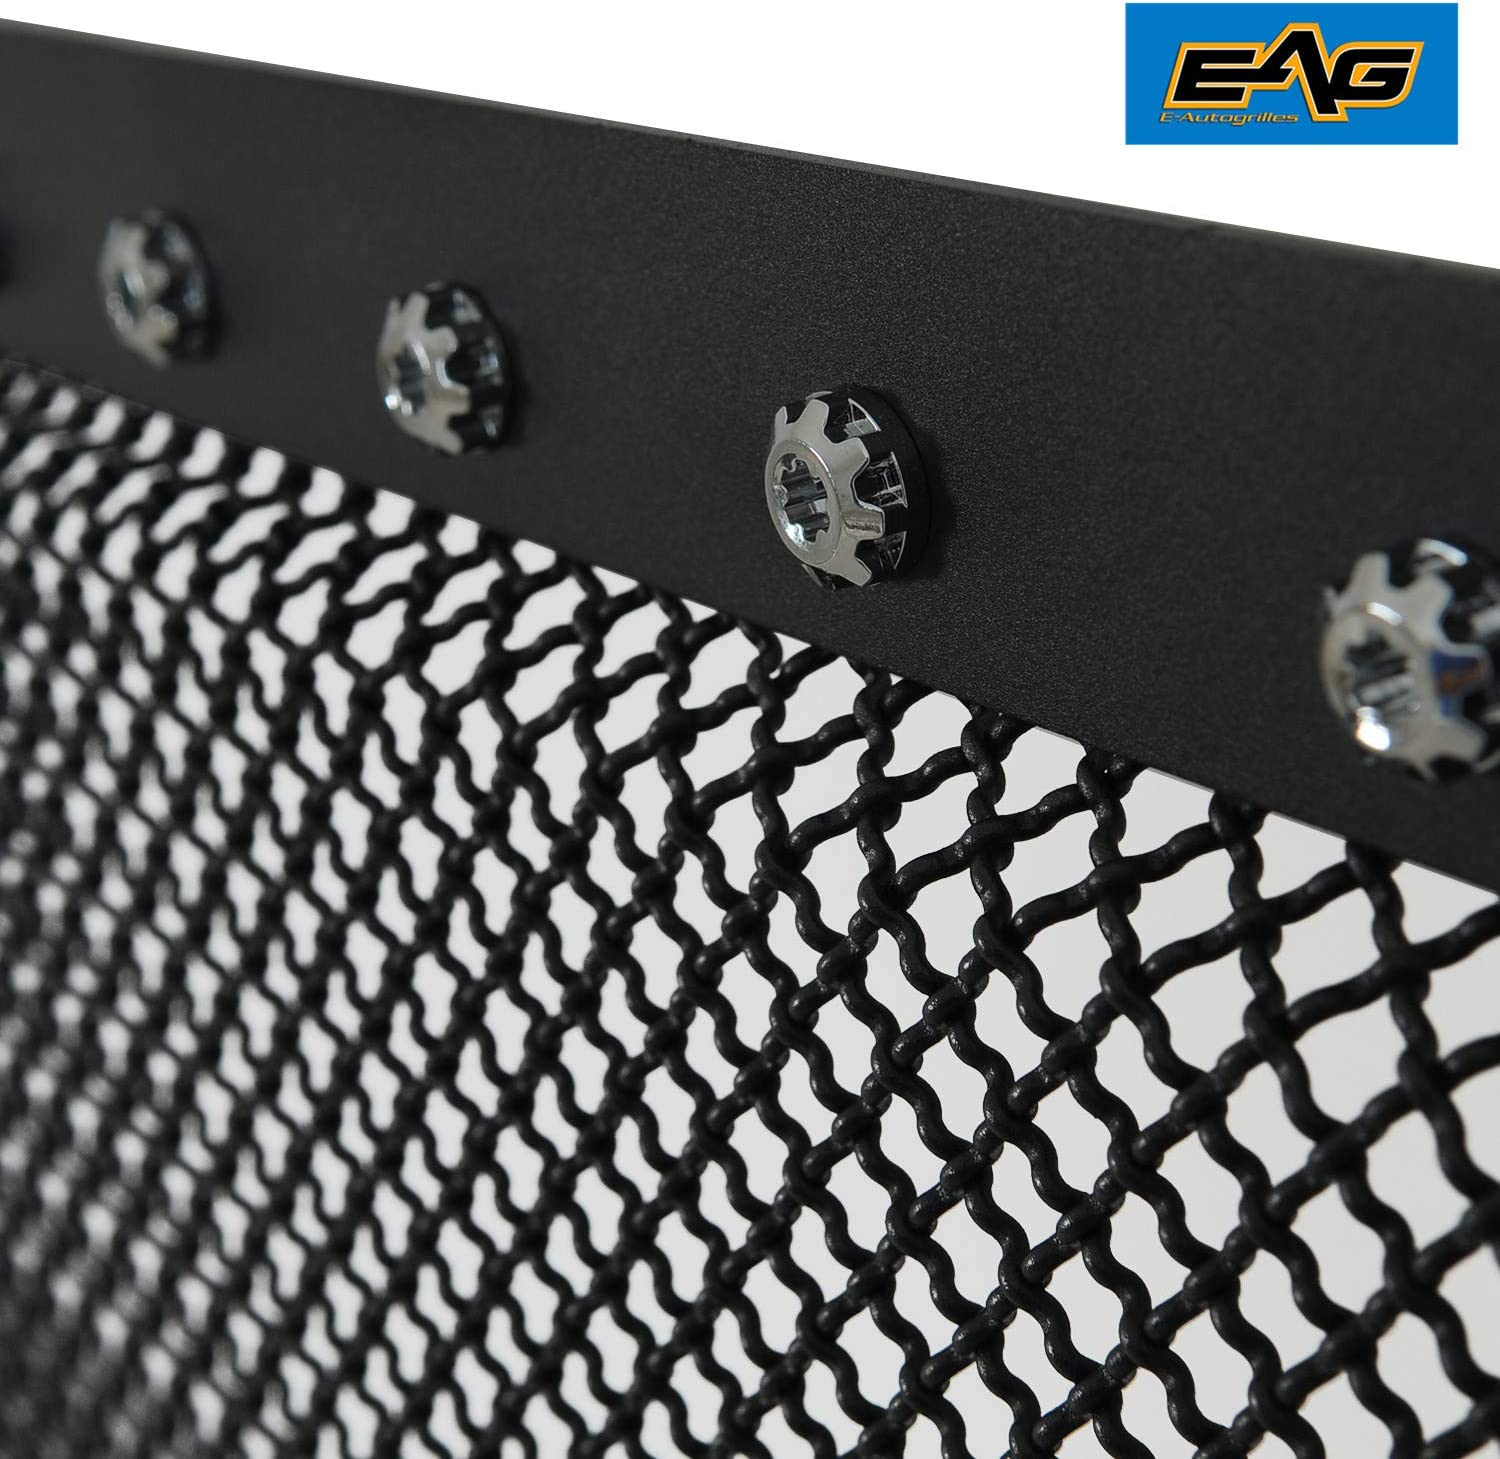 EAG Rivet Stainless Steel Wire Mesh Front Grille Fit for 03-06 GMC Sierra 1500